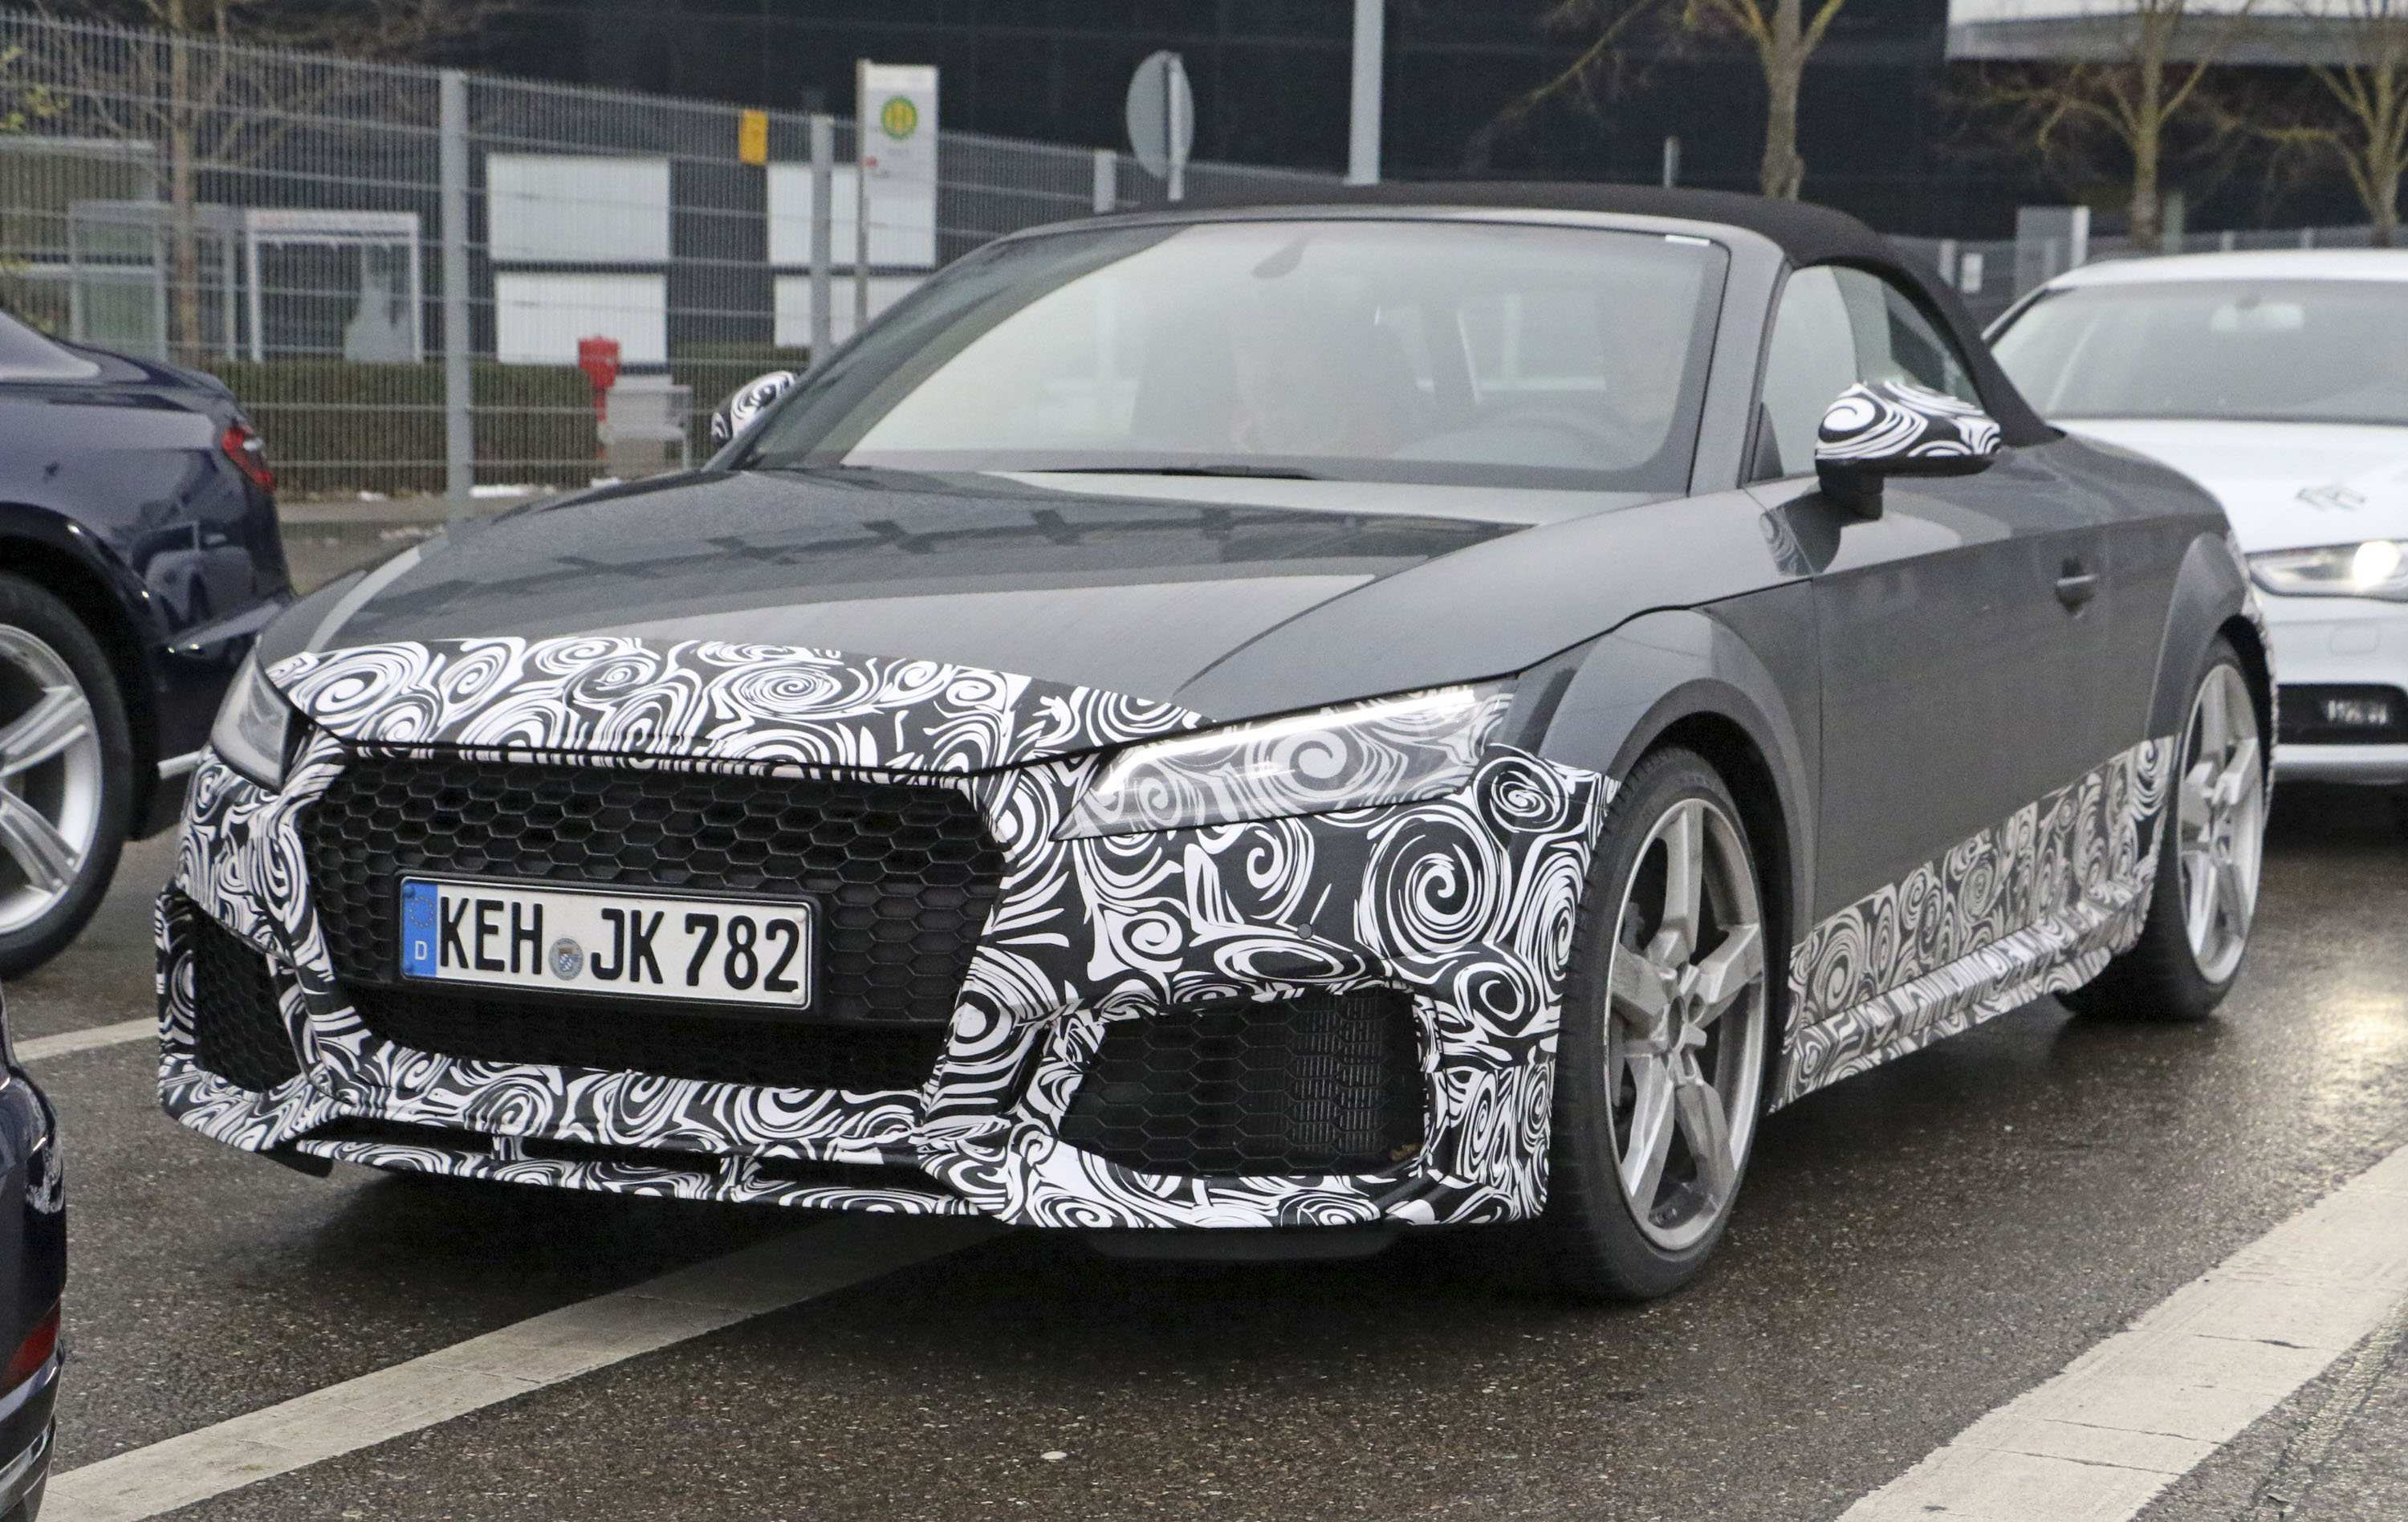 35 Concept of New Audi Tt Rs Plus 2019 Price And Review First Drive by New Audi Tt Rs Plus 2019 Price And Review